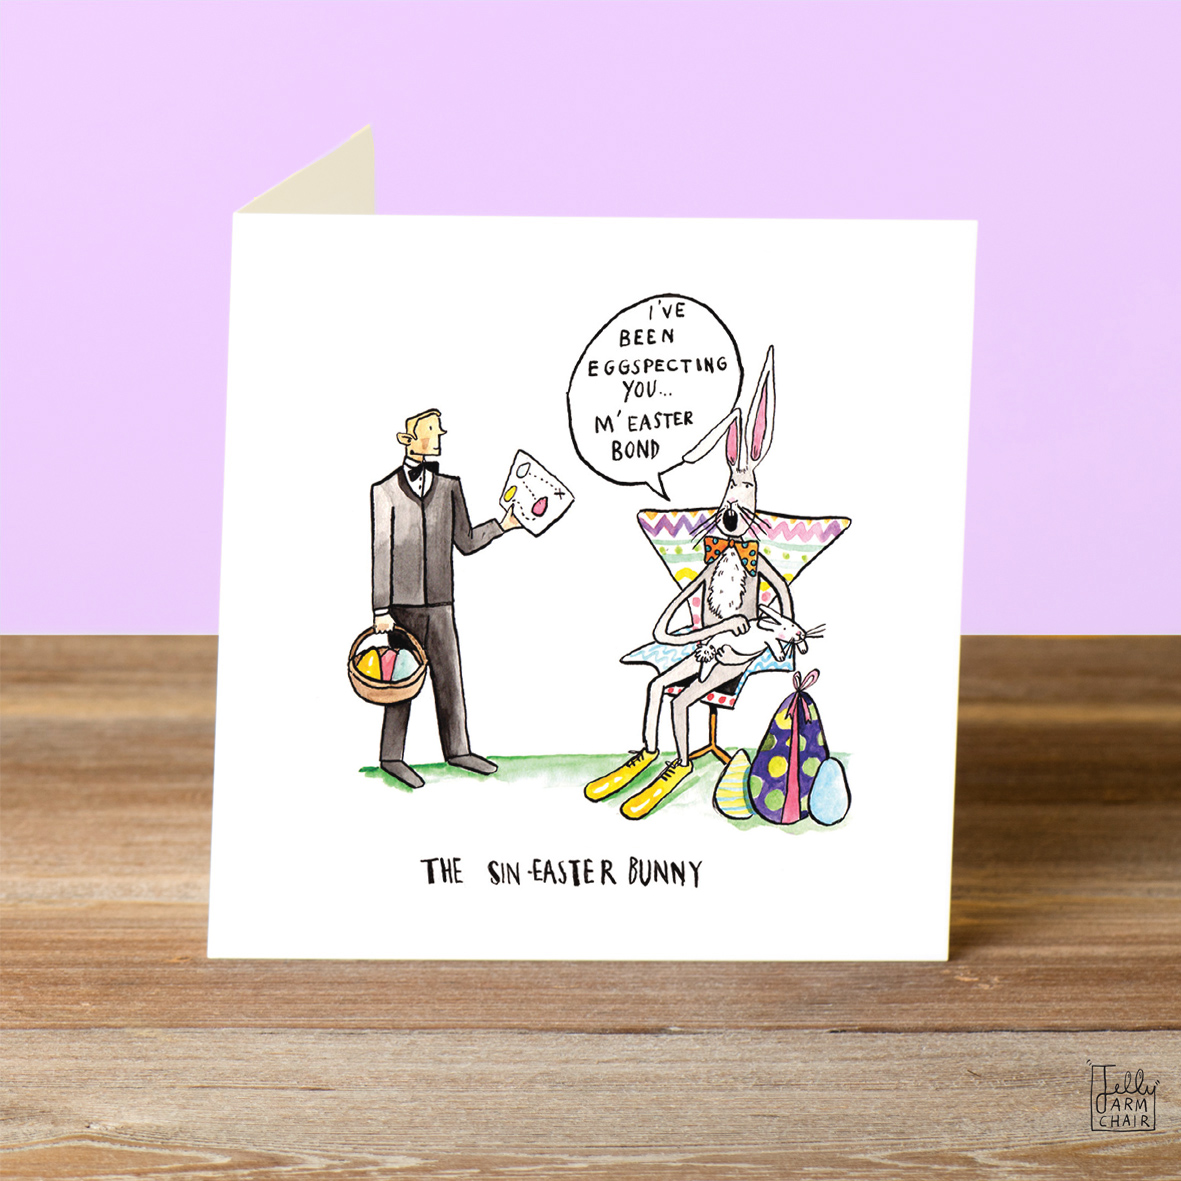 MEaster-Bond_James-bond-themed-easter-greetings-card-with-easter-puns_EA01_OT